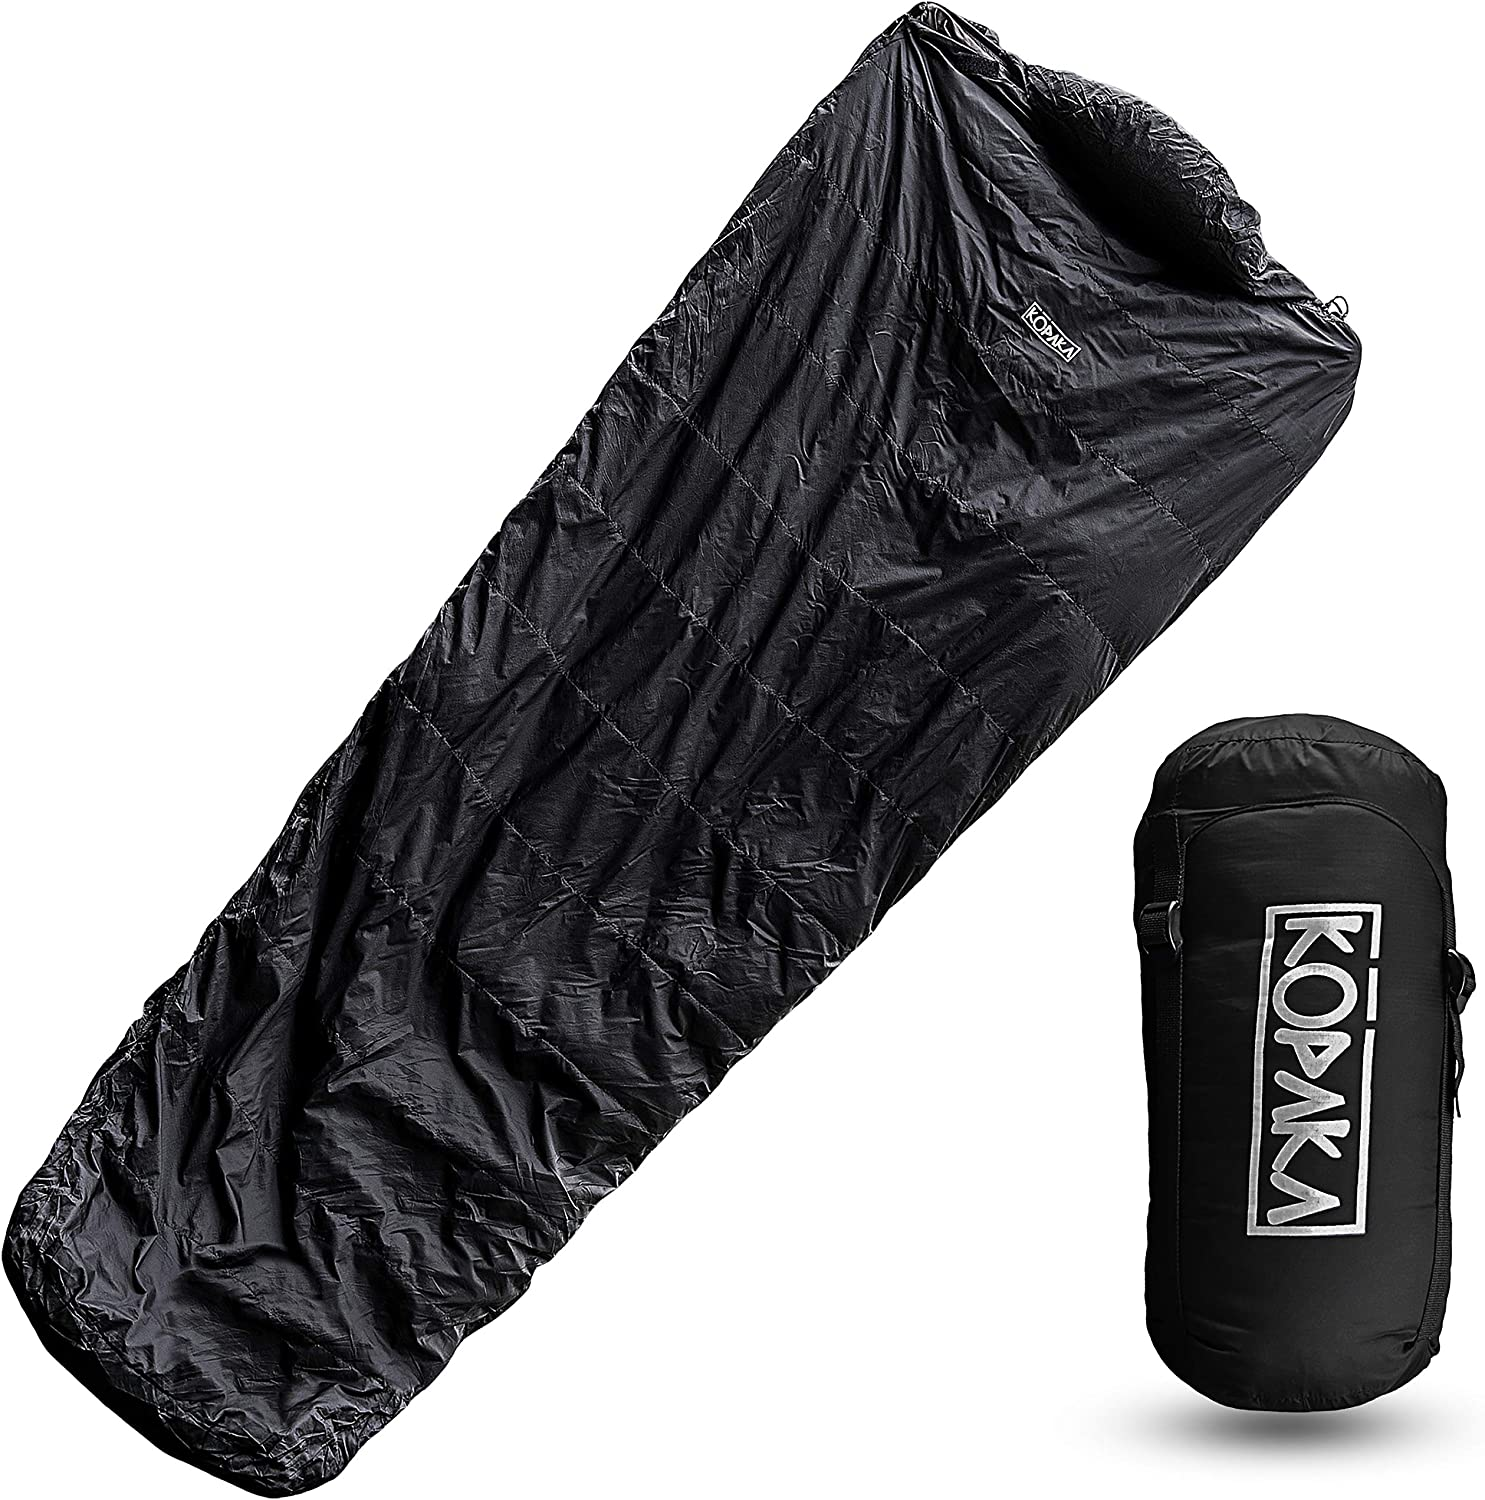 Ultralight Duck Down Sleeping Bag Ideal for Travel Camping Backpacking (Black)